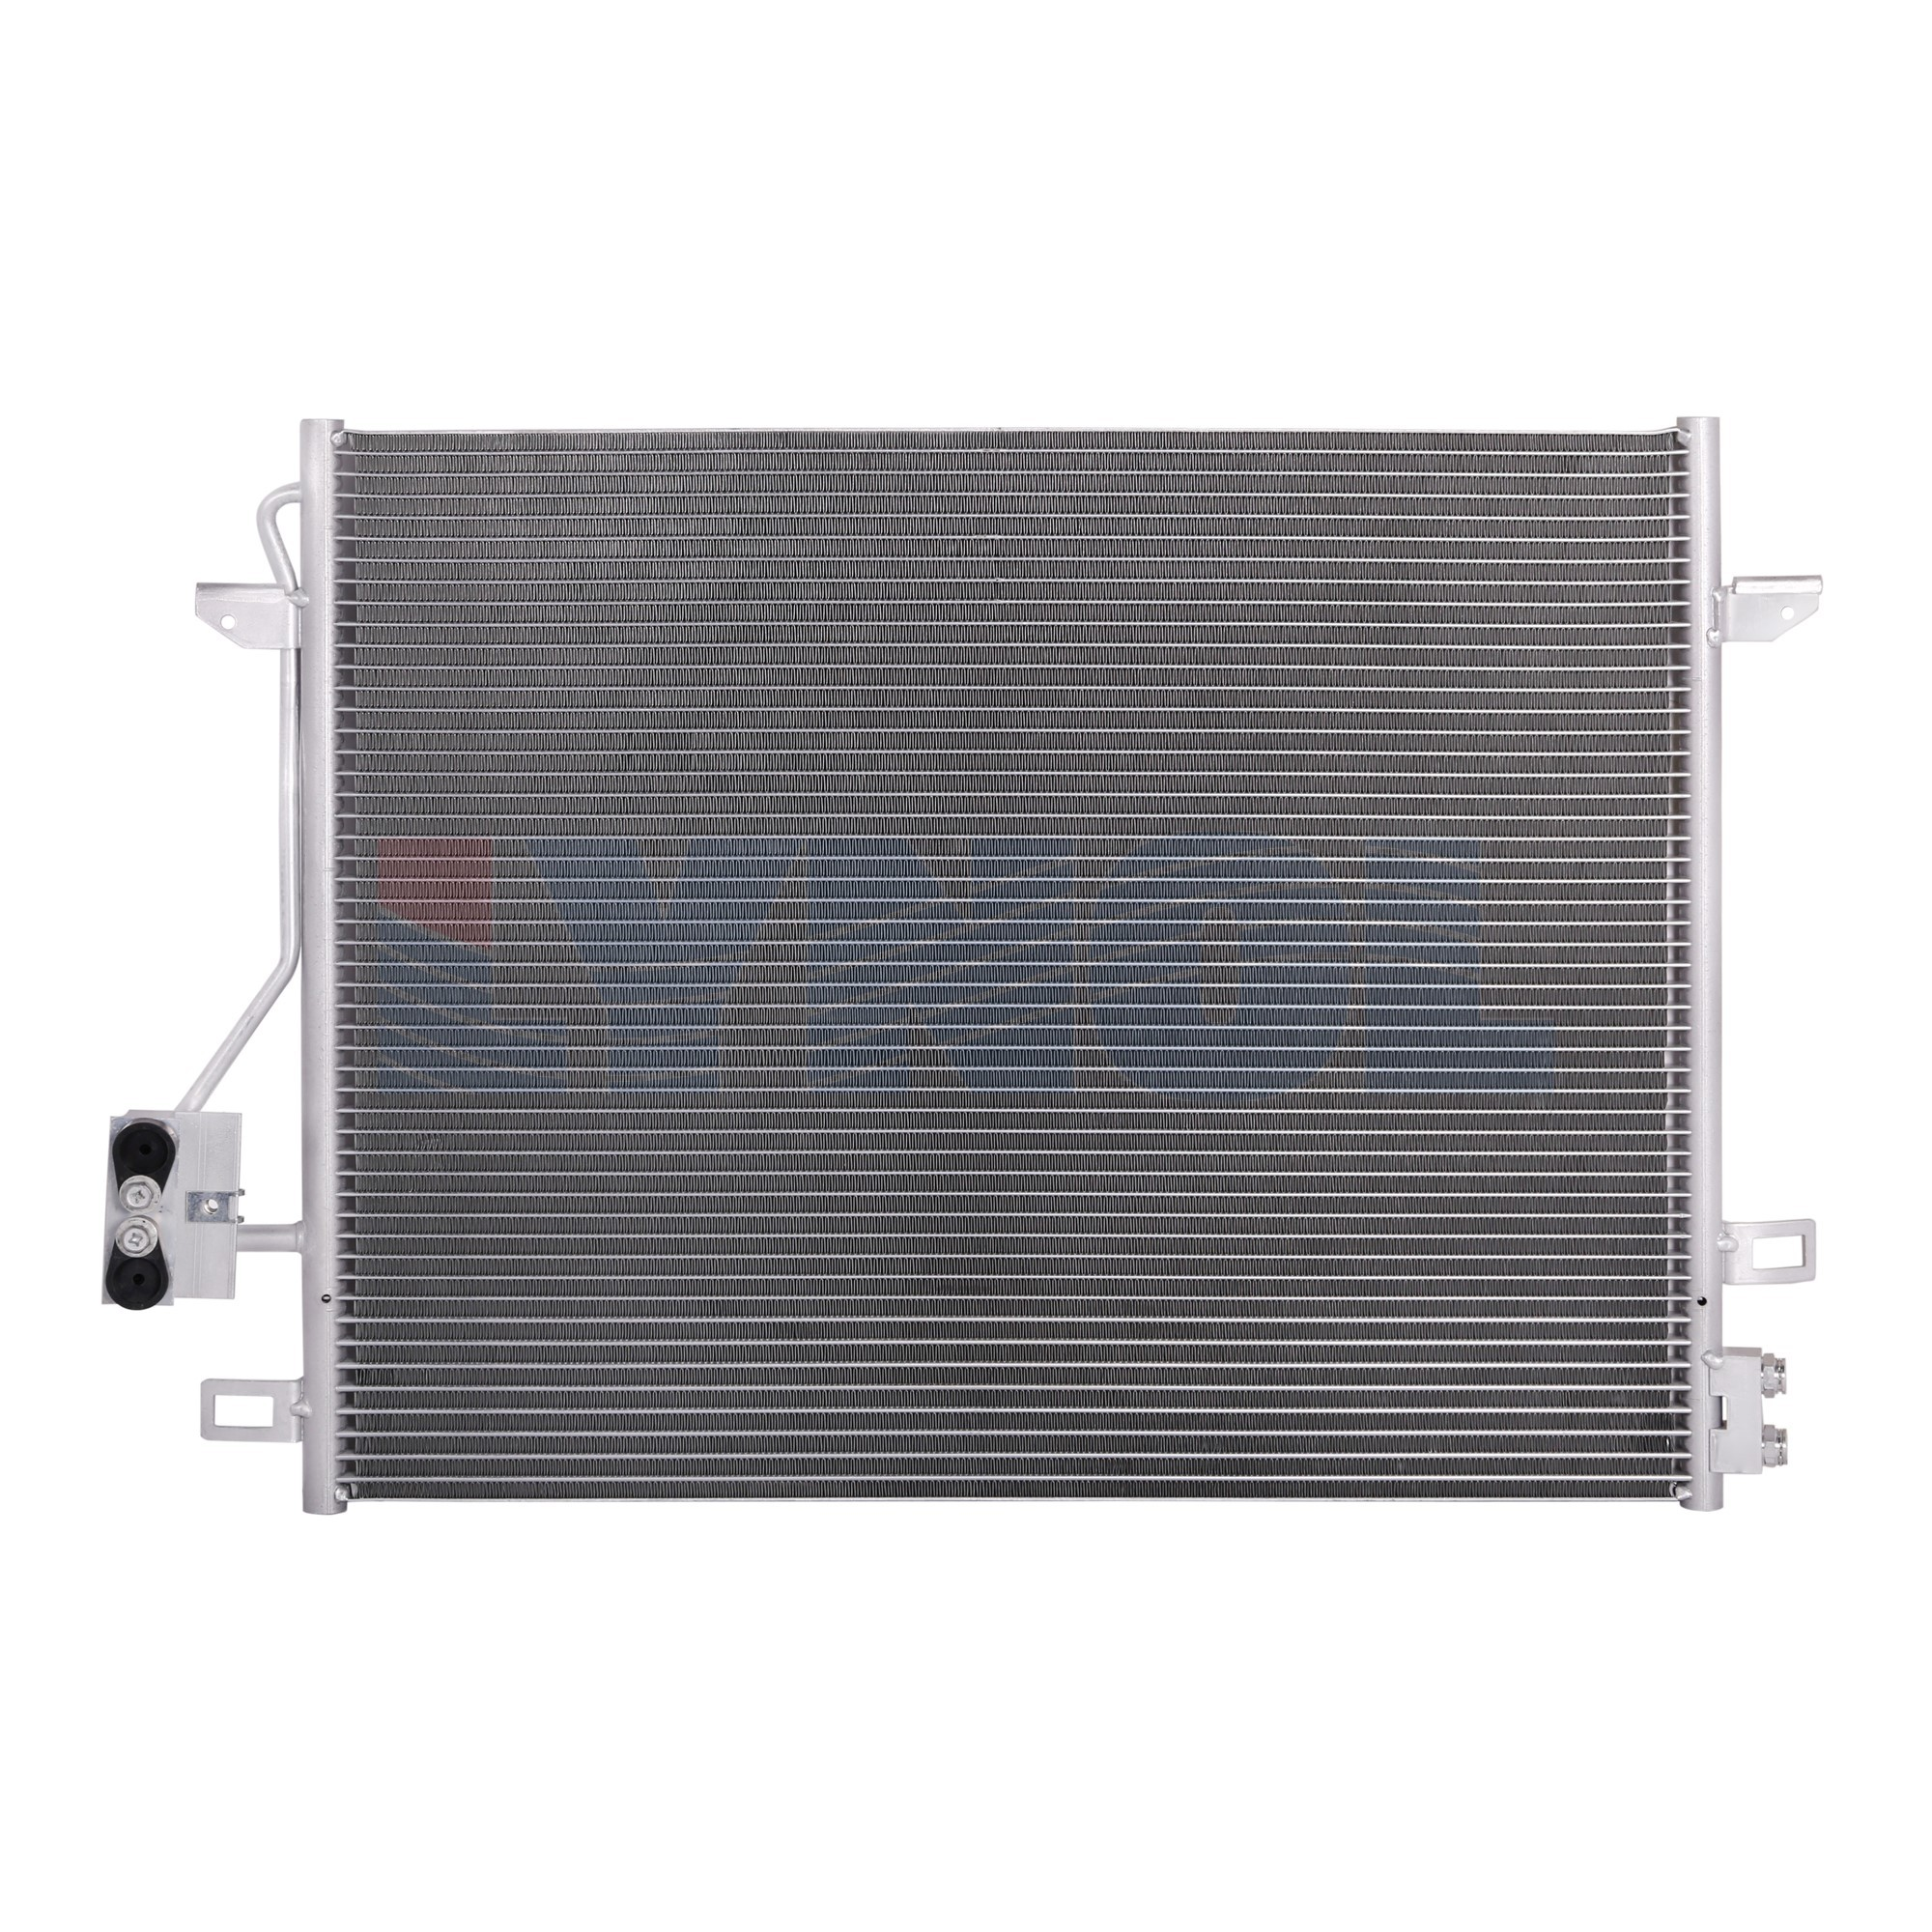 AC3682 -  AC Condenser - 08-16 Chrysler Town & Country, Dodge Grand Caravan, Volkswagen Routan